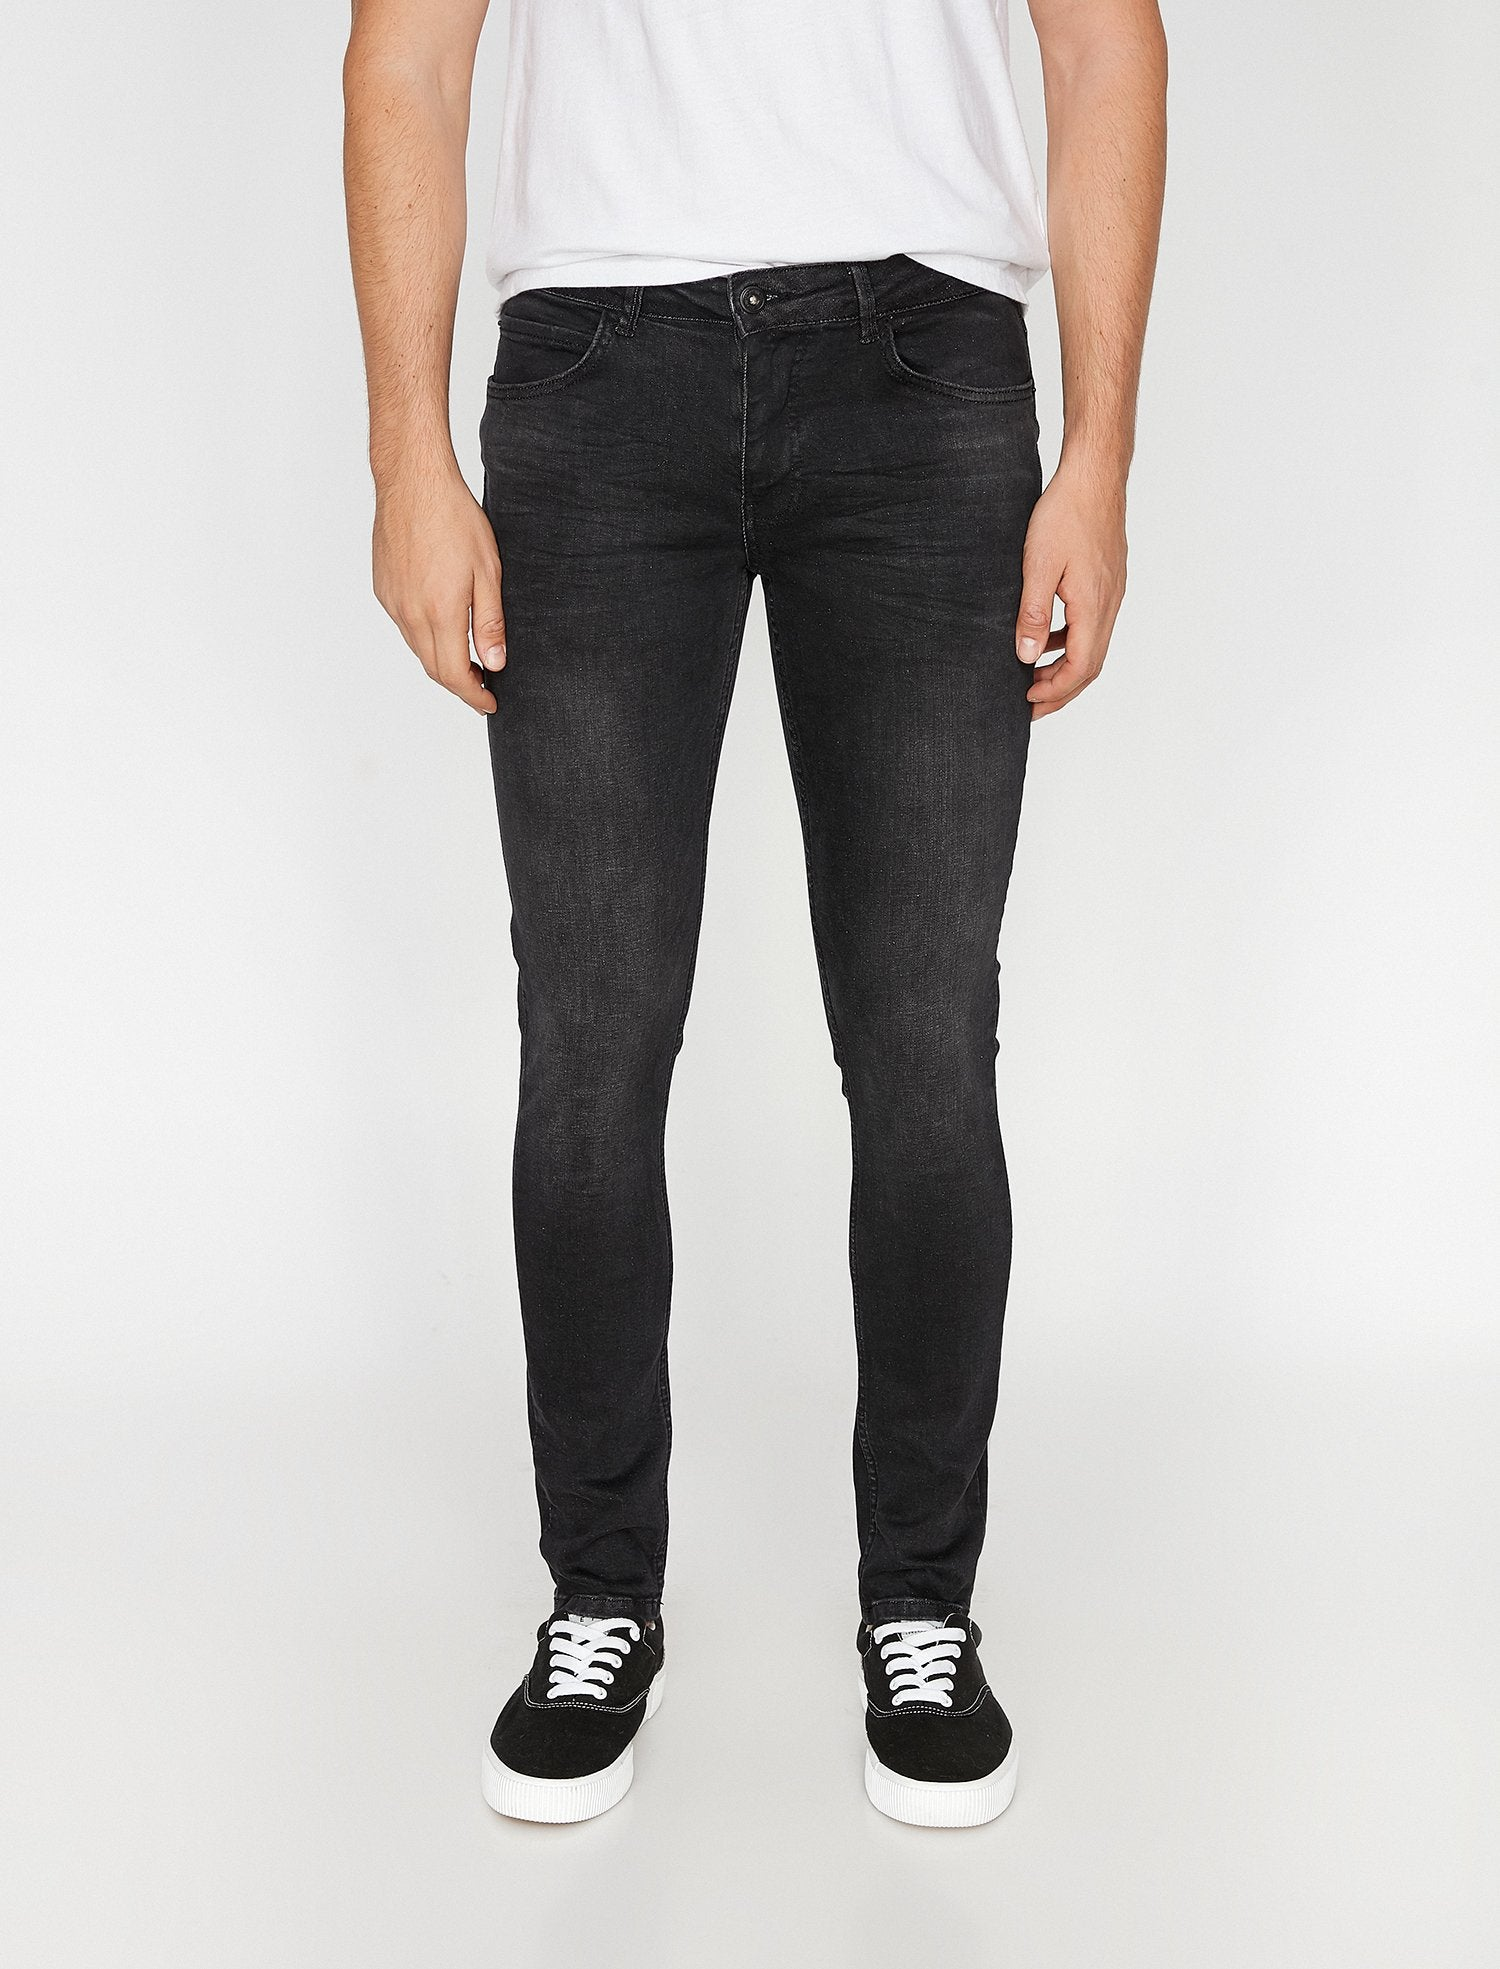 Super Skinny Fit Justin Jeans in Black Wash